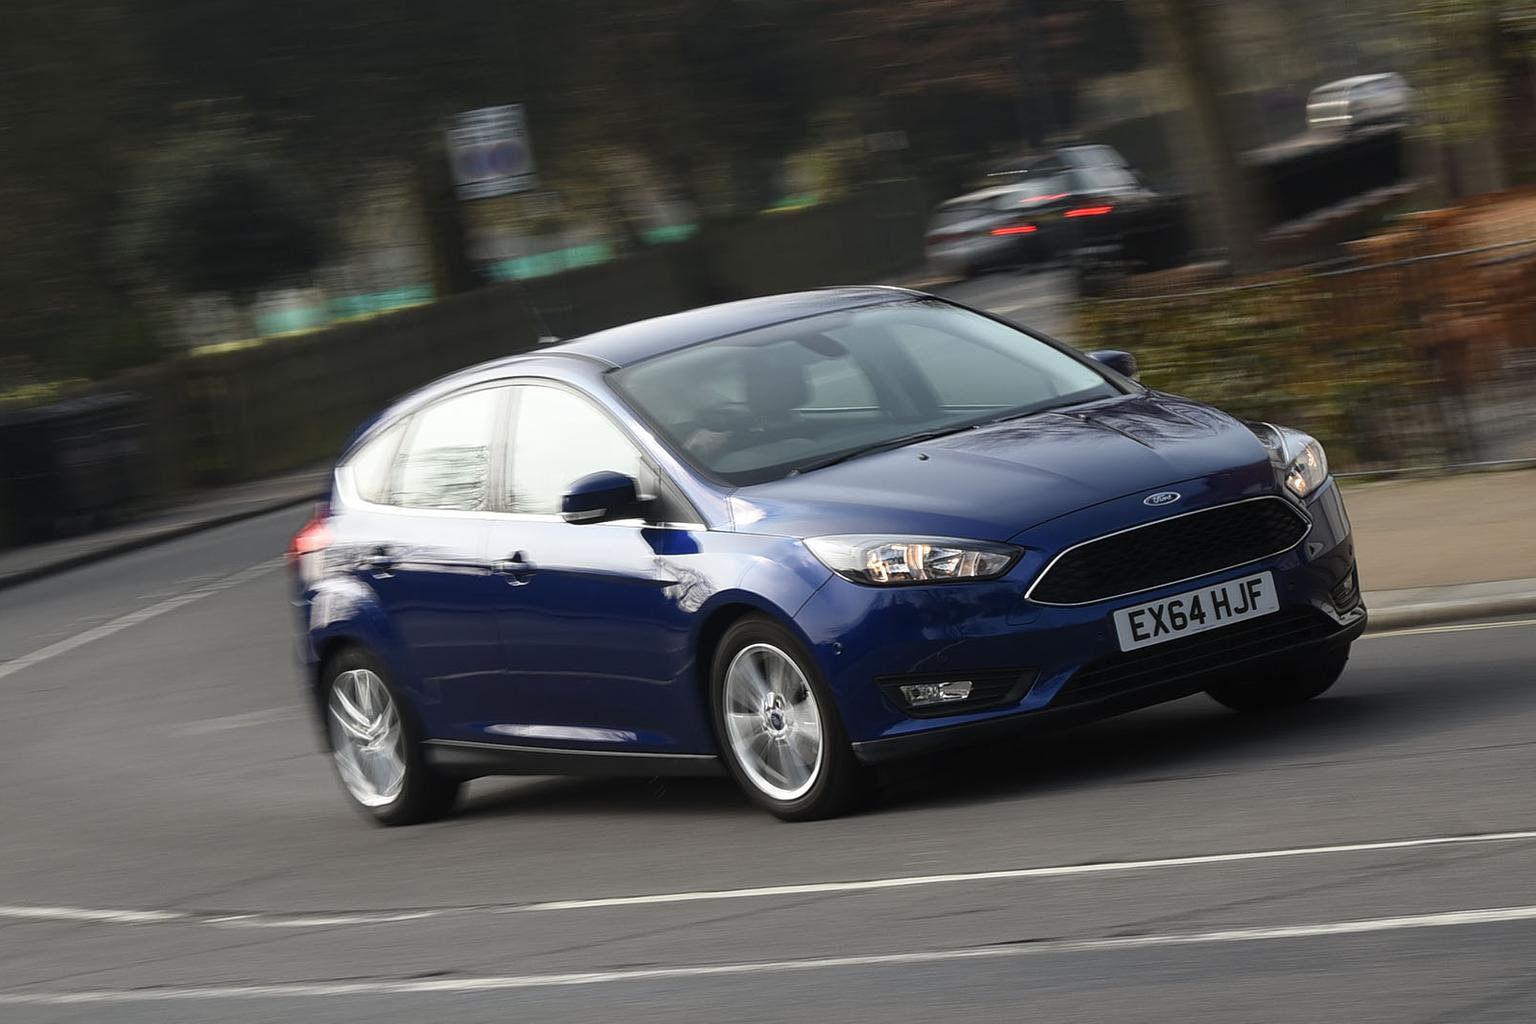 Ford Focus long-term review